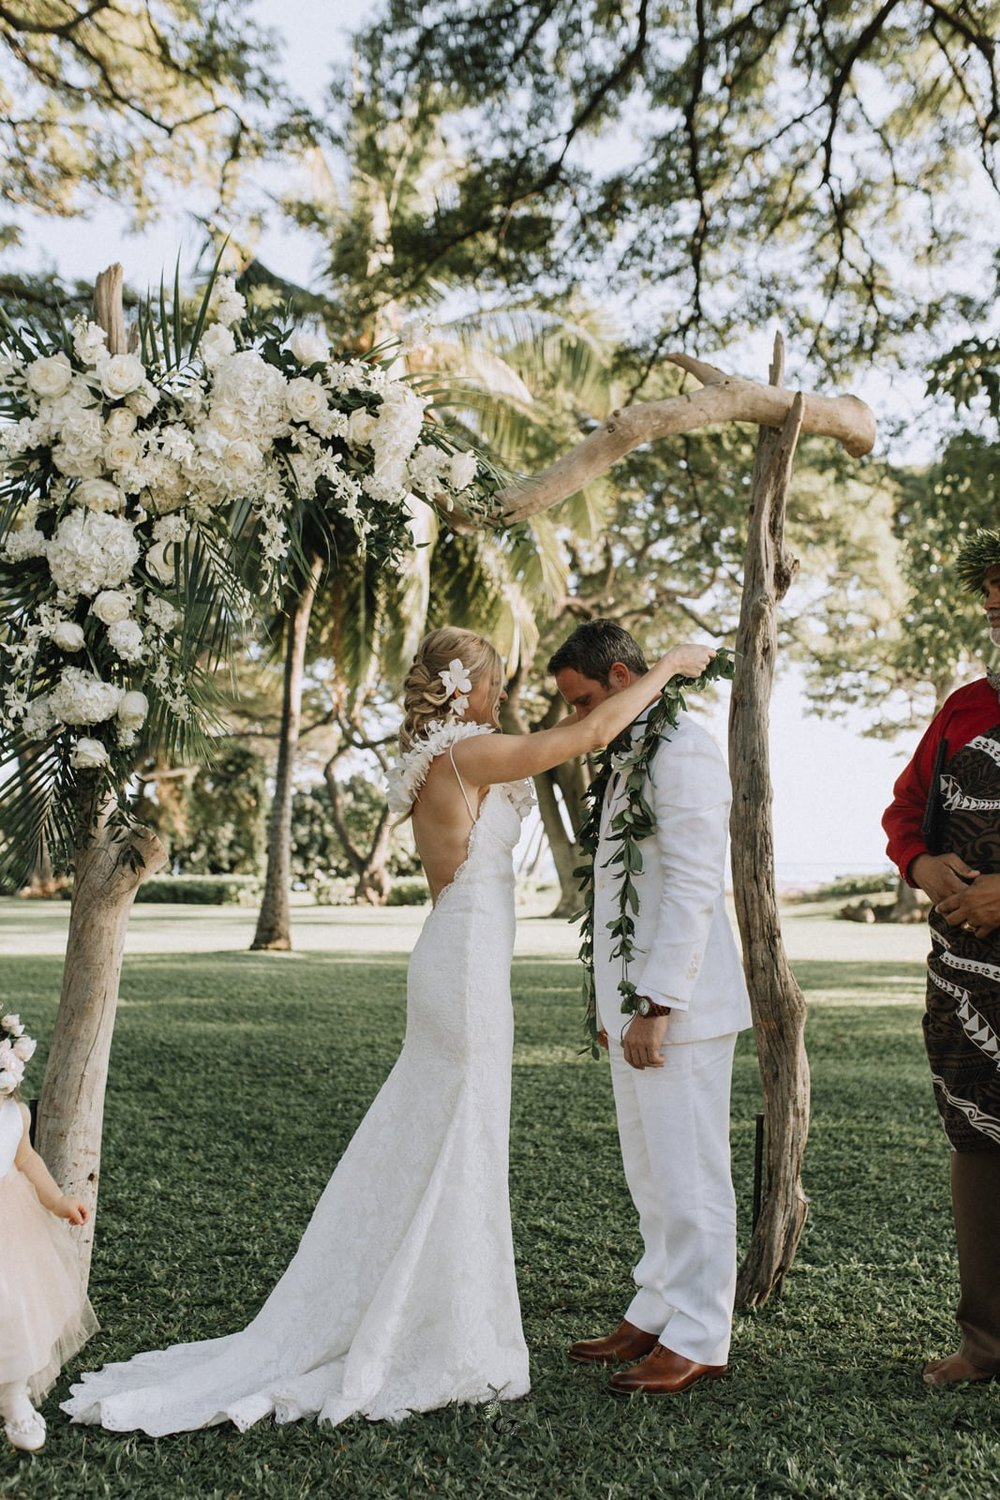 Flower Lei ceremony | Hawaii wedding traditions | Luxury destination wedding planner | Unveiled Hawaii